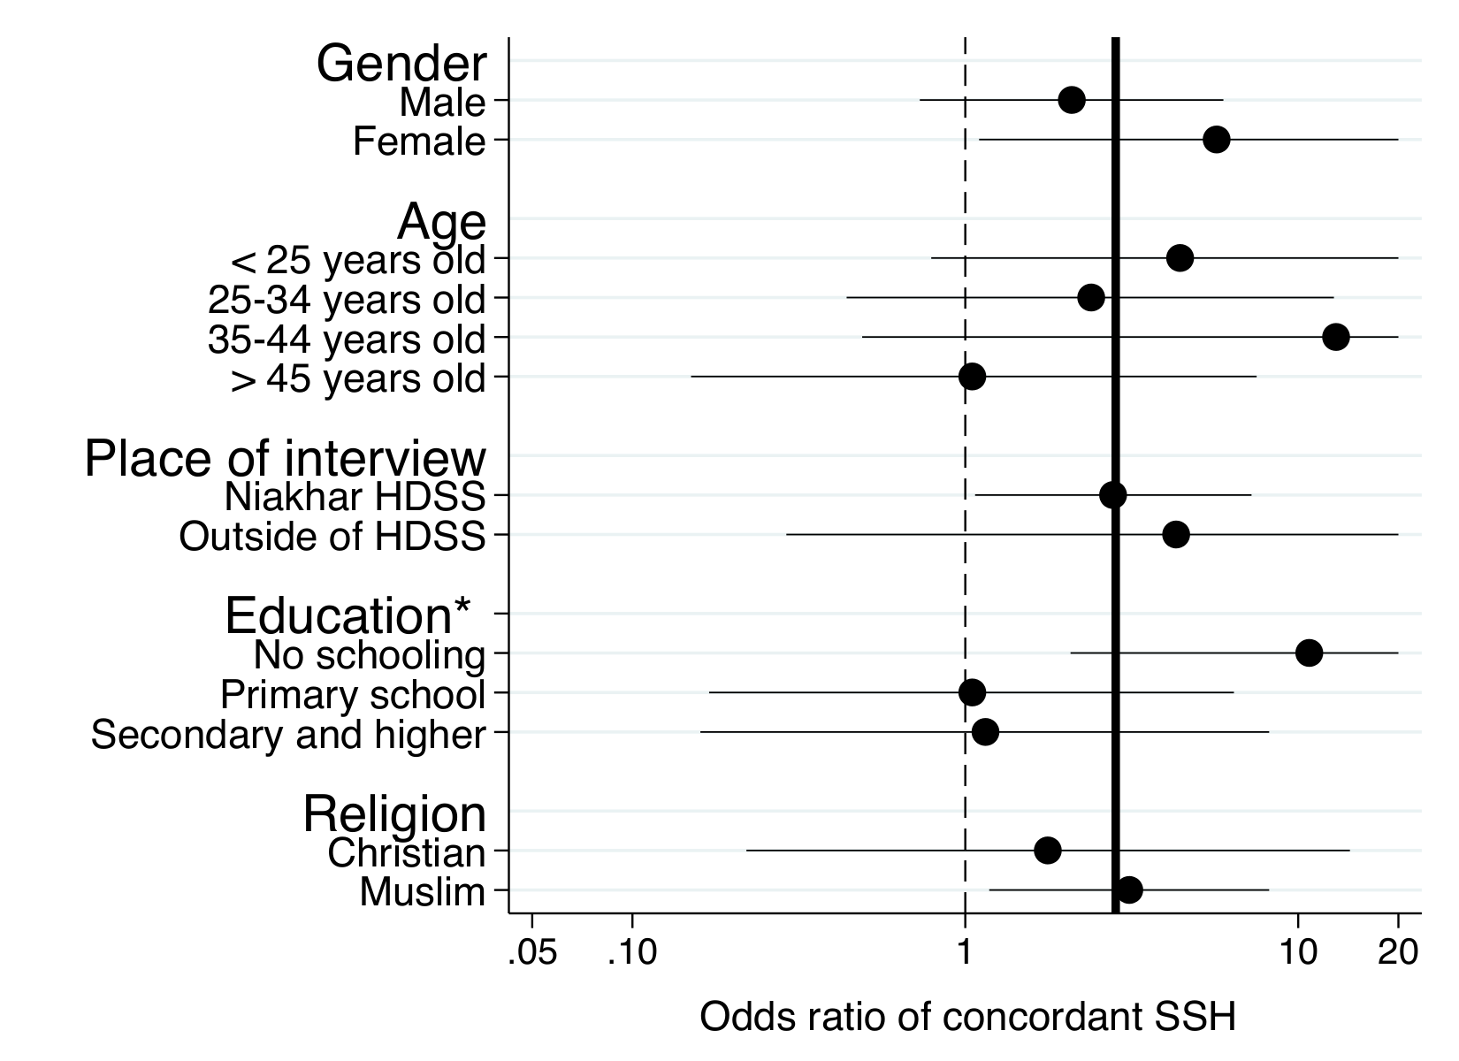 Subgroup analyses of the effects of the SSC on the sensitivity of SSH data for adult female deaths.